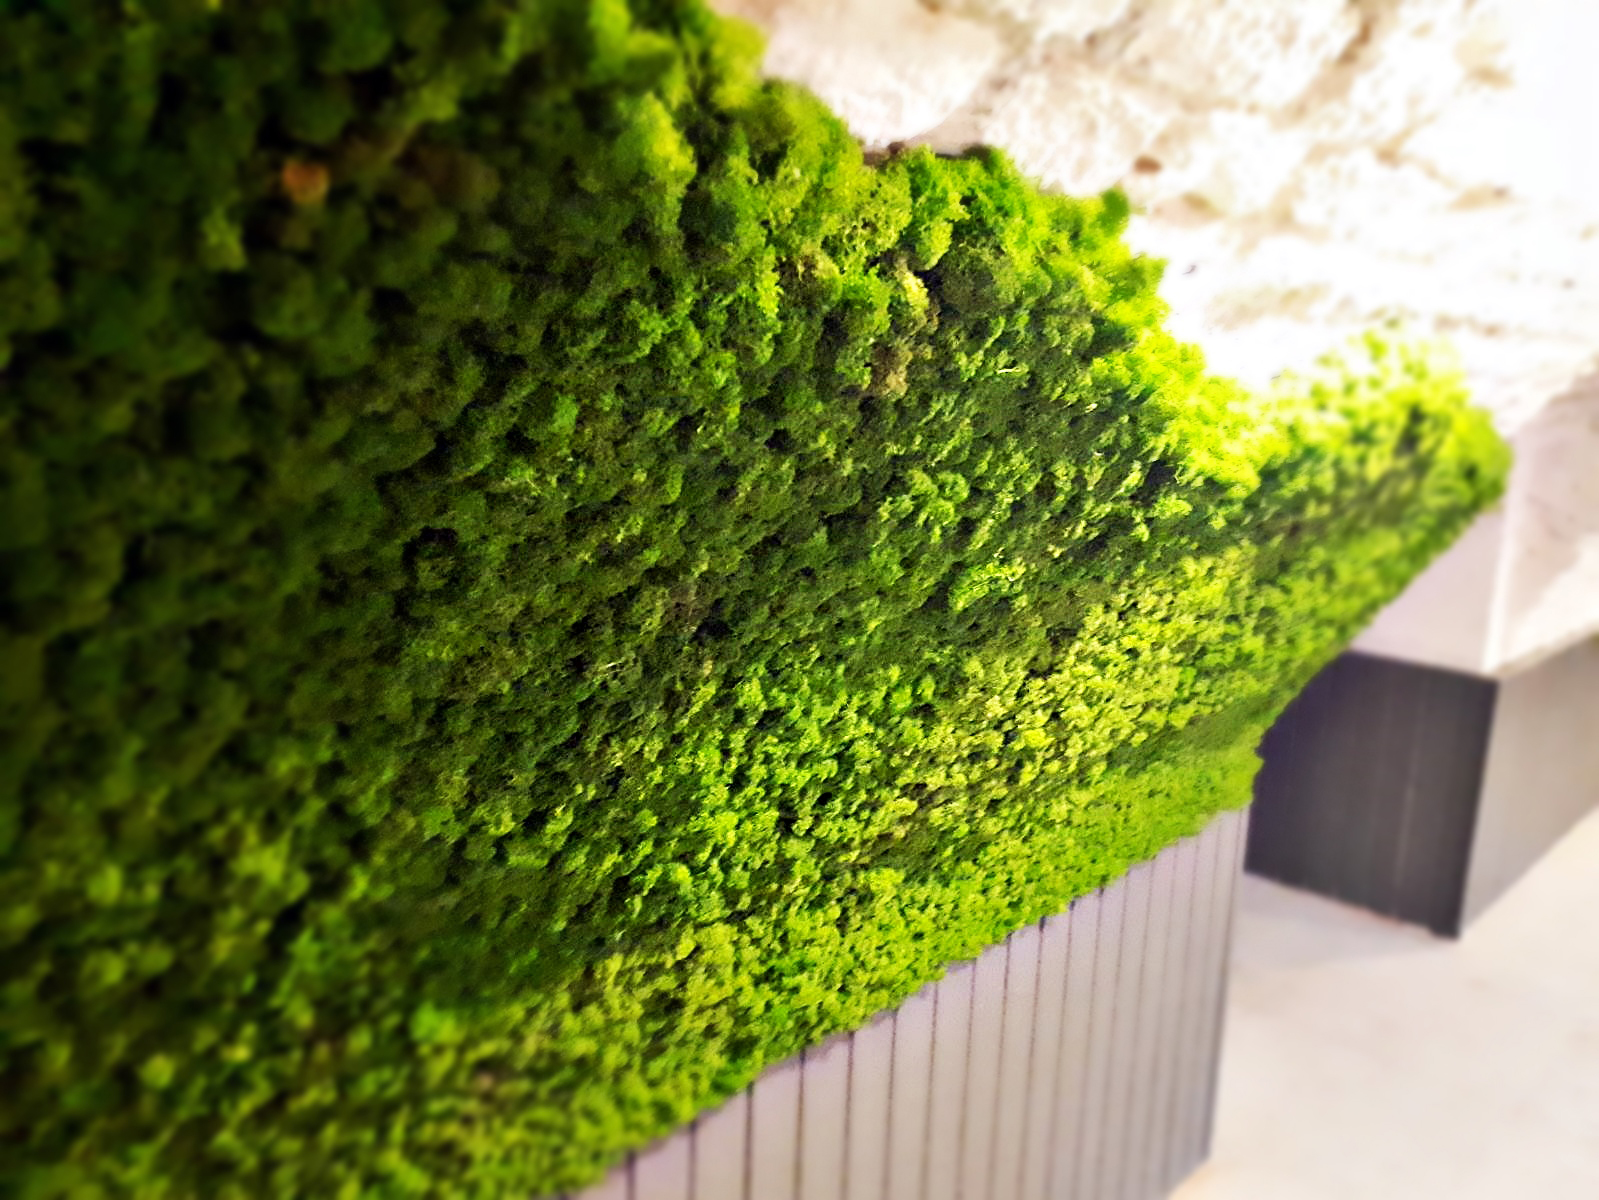 Highly flexible moss panels for cellar vault cladding, restaurant, functionally acoustic